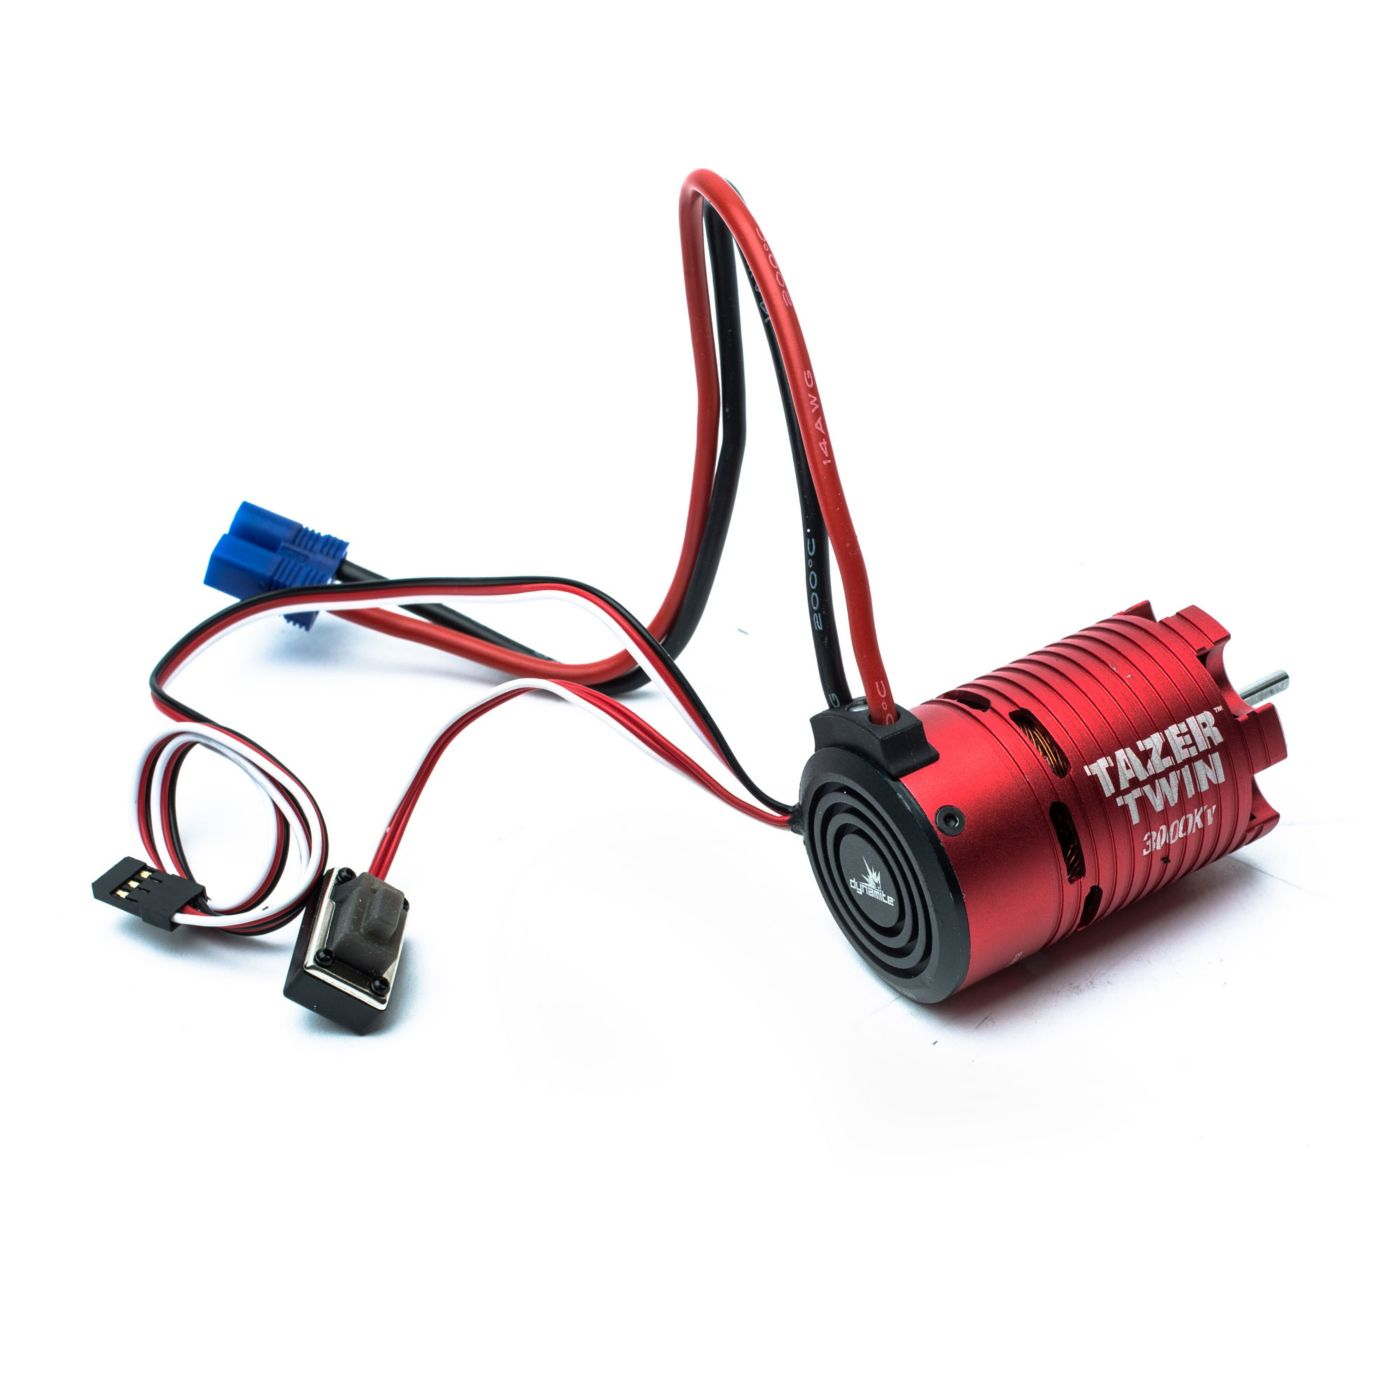 small resolution of image for tazer twin 2 in 1 brushless motor esc combo 3000kv